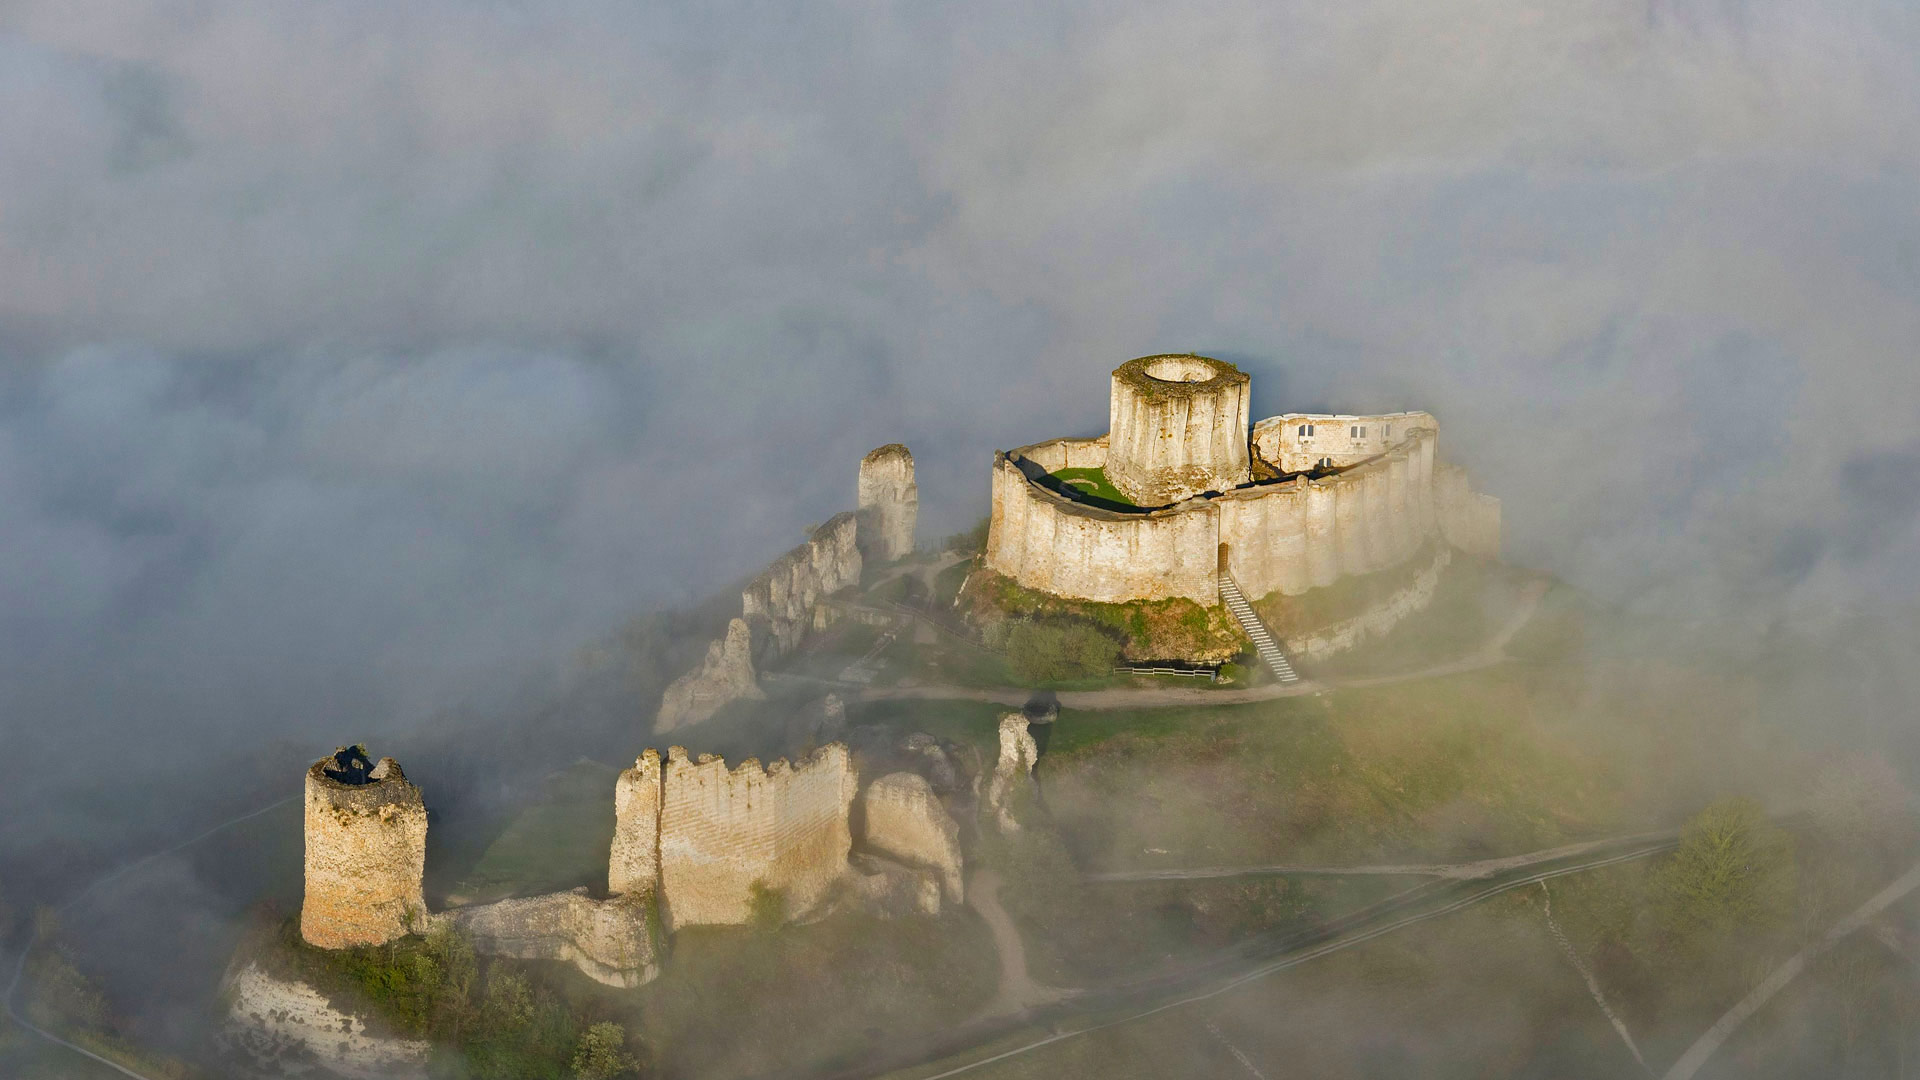 Château Gaillard, a 12th-century fortress in the Seine Valley, France (© Francis Cormon/age fotostock)